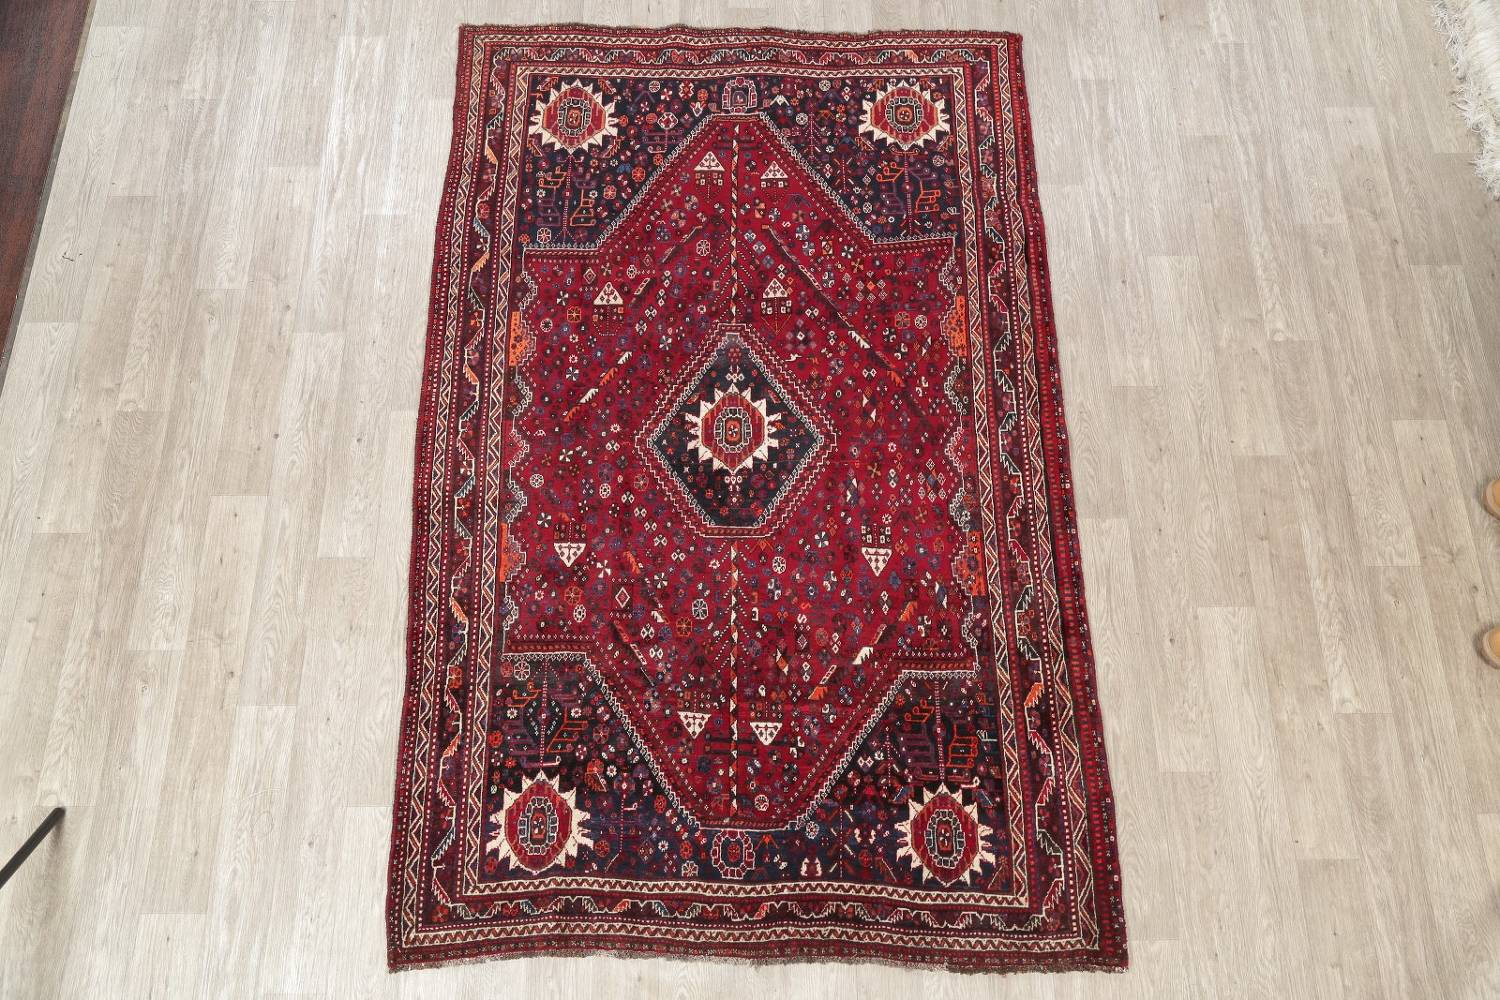 Antique Red Tribal Geometric Qashqai Persian Hand-Knotted 5x8 Wool Area Rug image 2